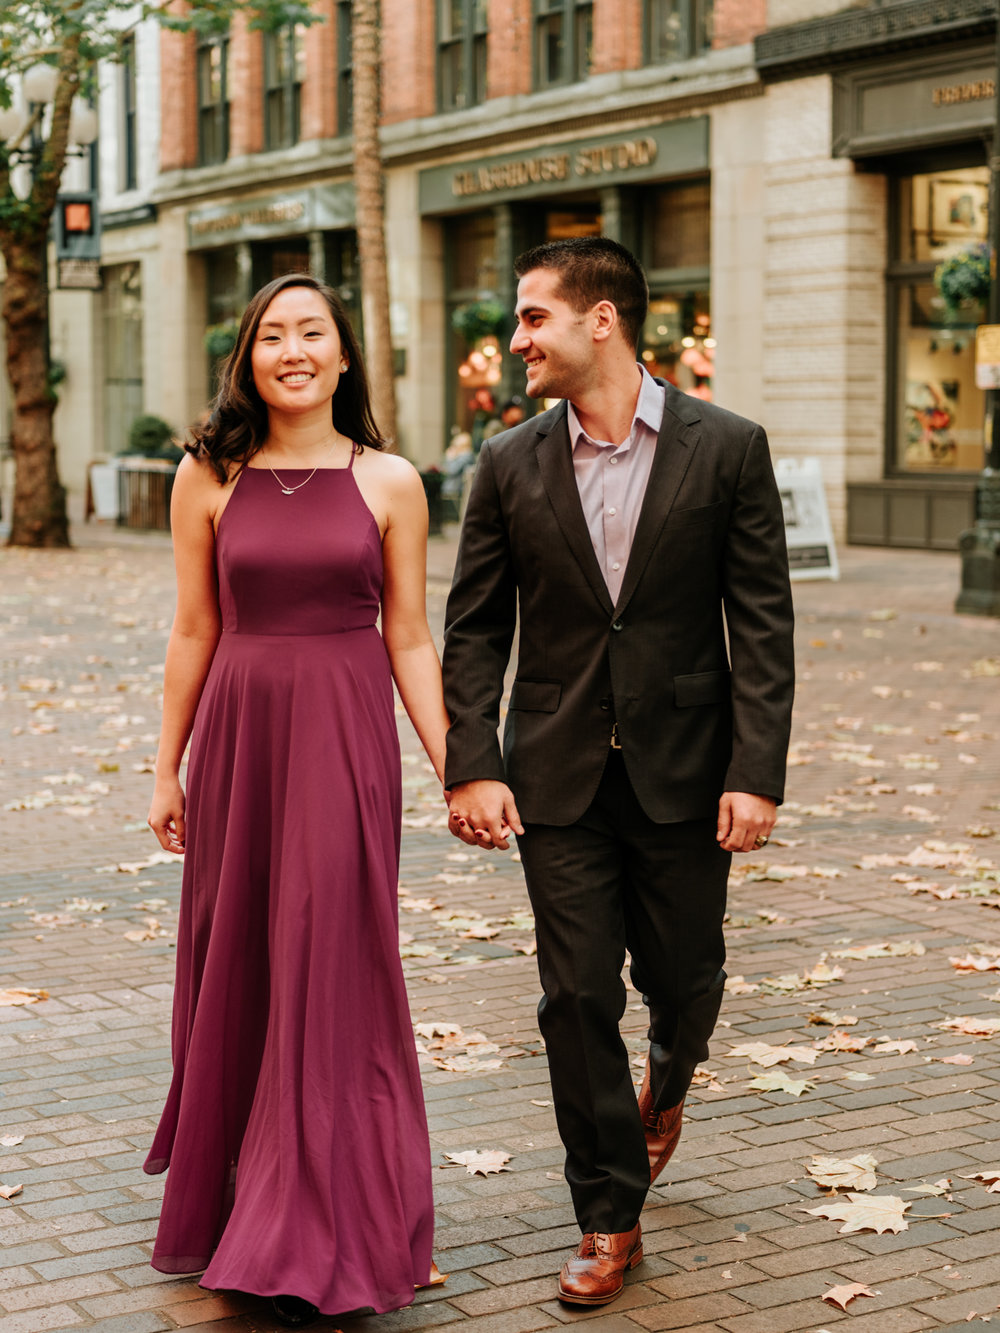 Seattle Engagement Photographer_Stolen Glimpses 7.jpg